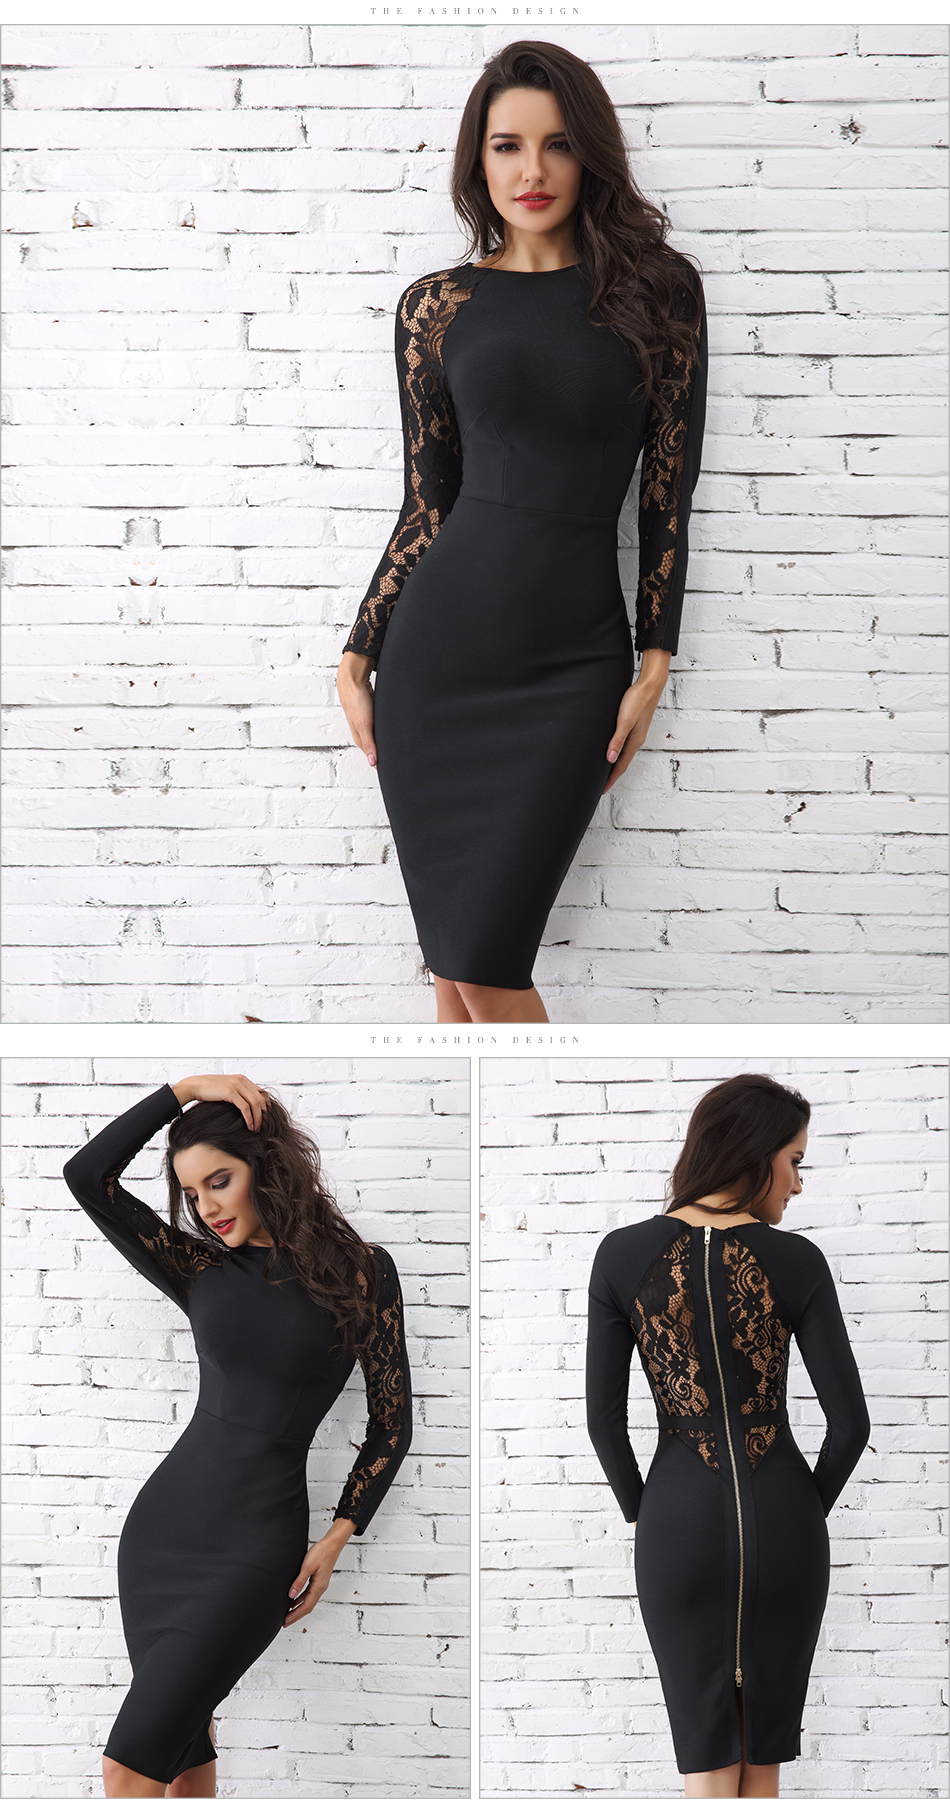 Adyce 19 Winter Elegant Lace Bandage Dress Women Black Floral Long Sleeve Hollow Out Clubwear Sexy Midi Celebrity Party Dress 6